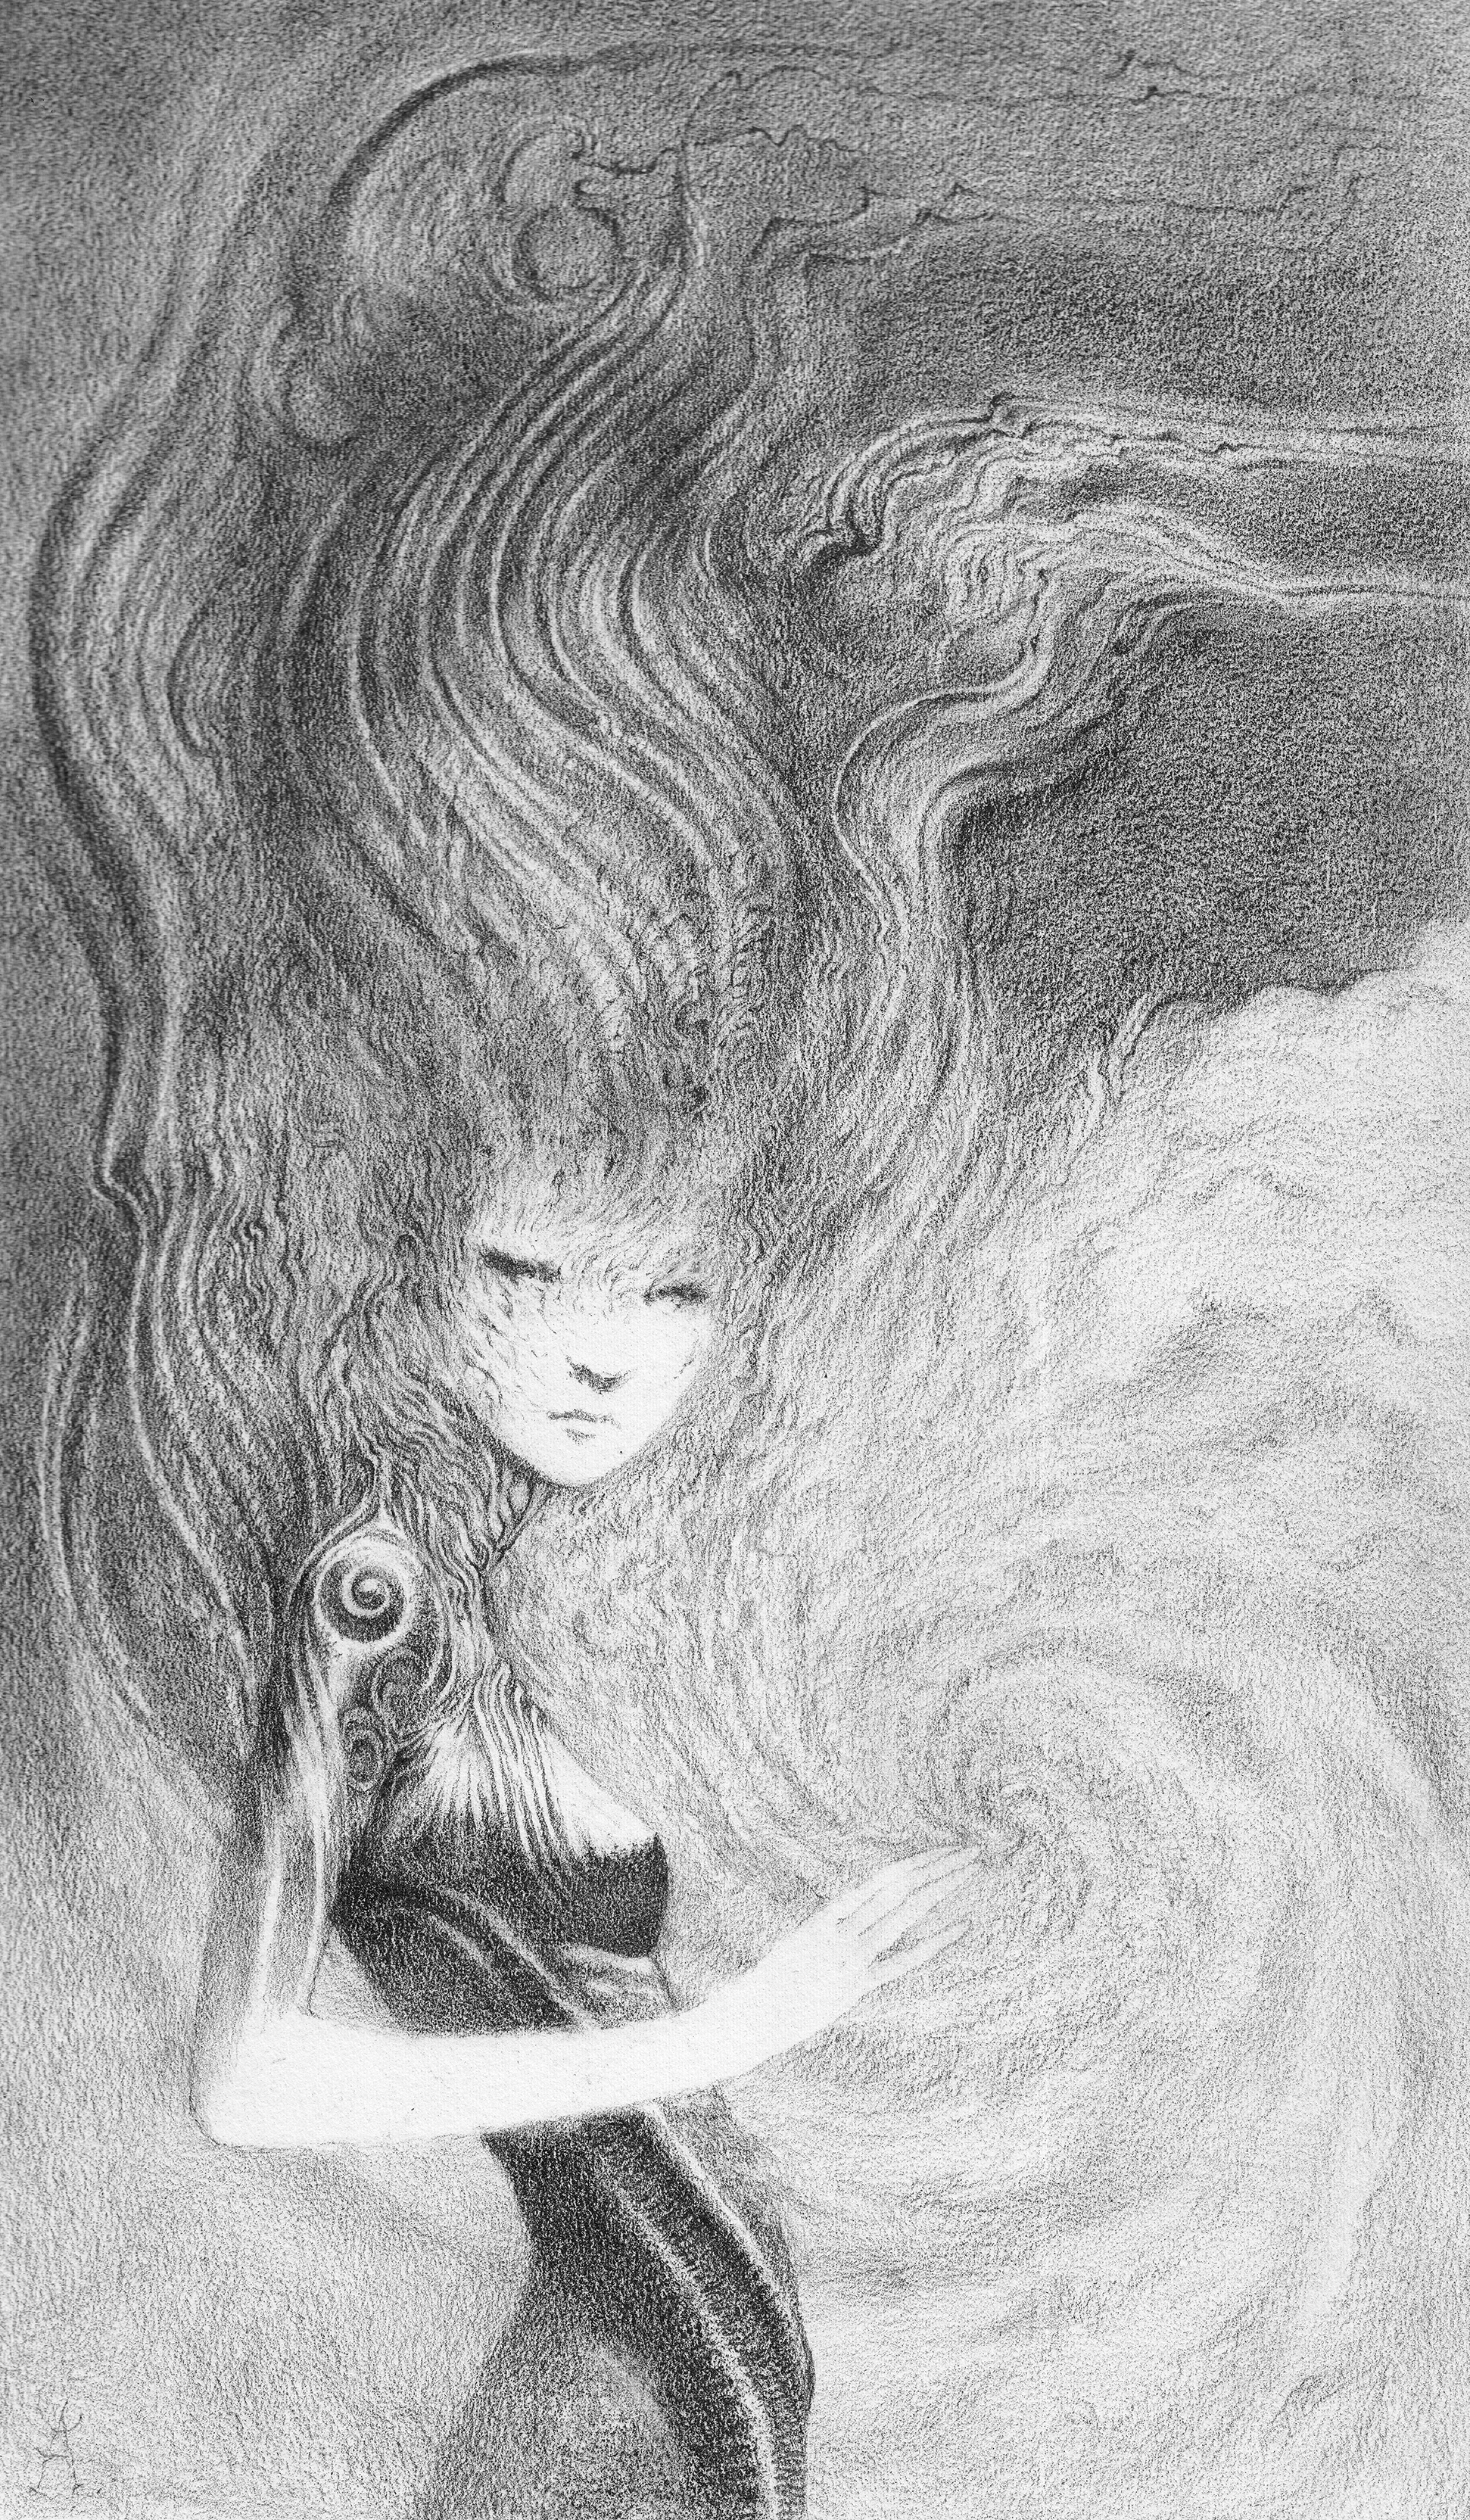 Female Elemental figure done in graphite on Stonehenge Cream Journal paper